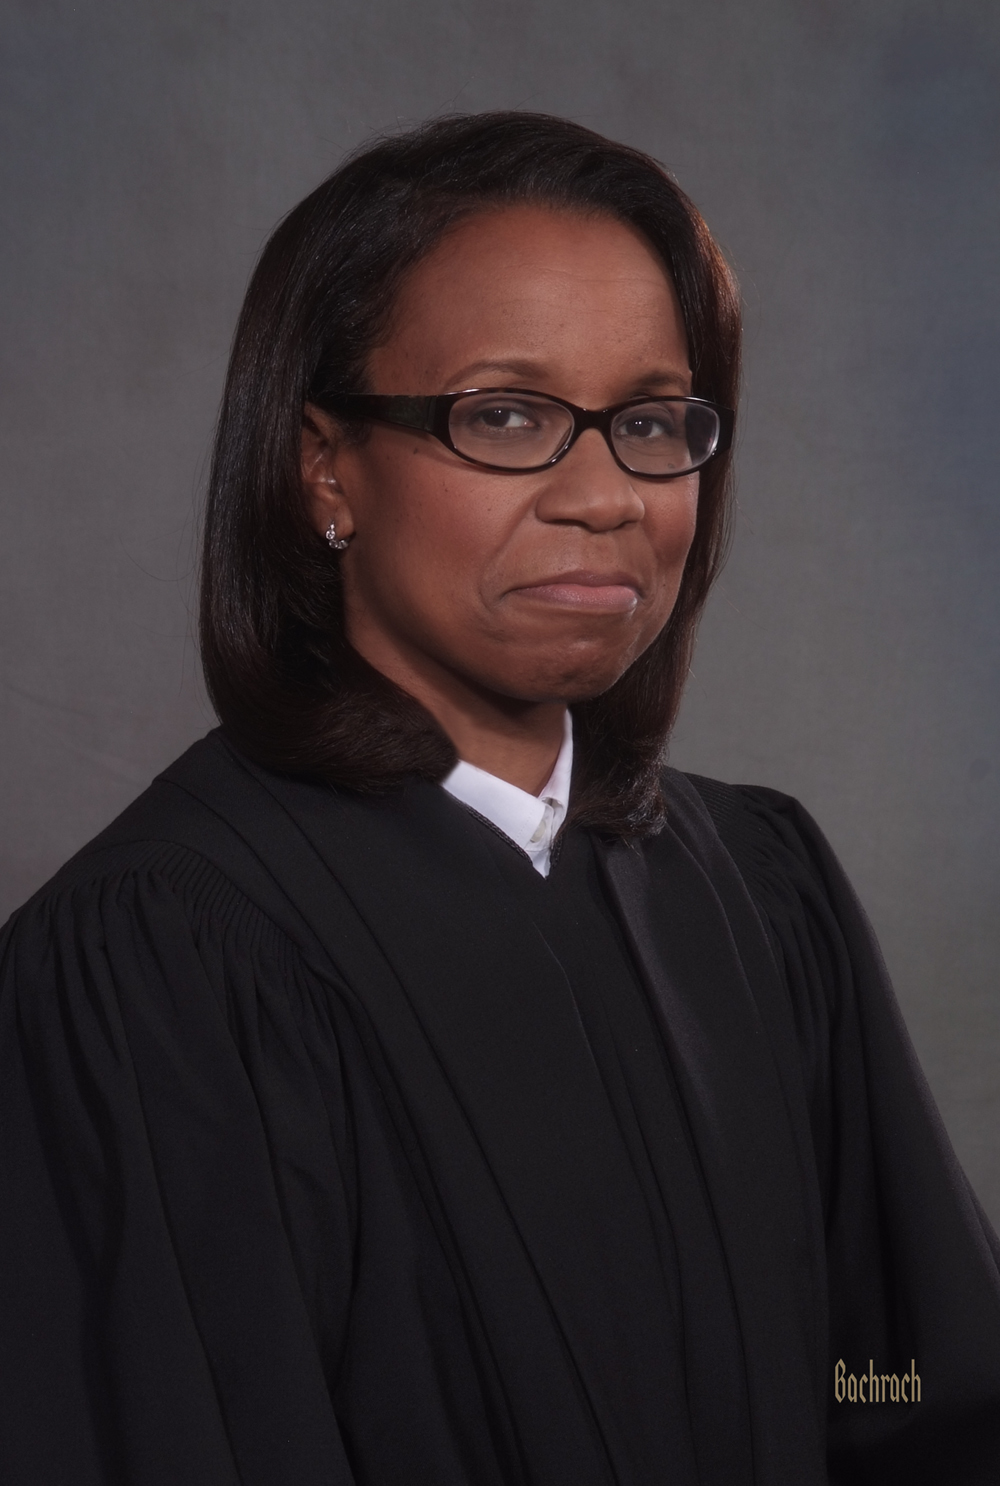 Judge Denise Casper